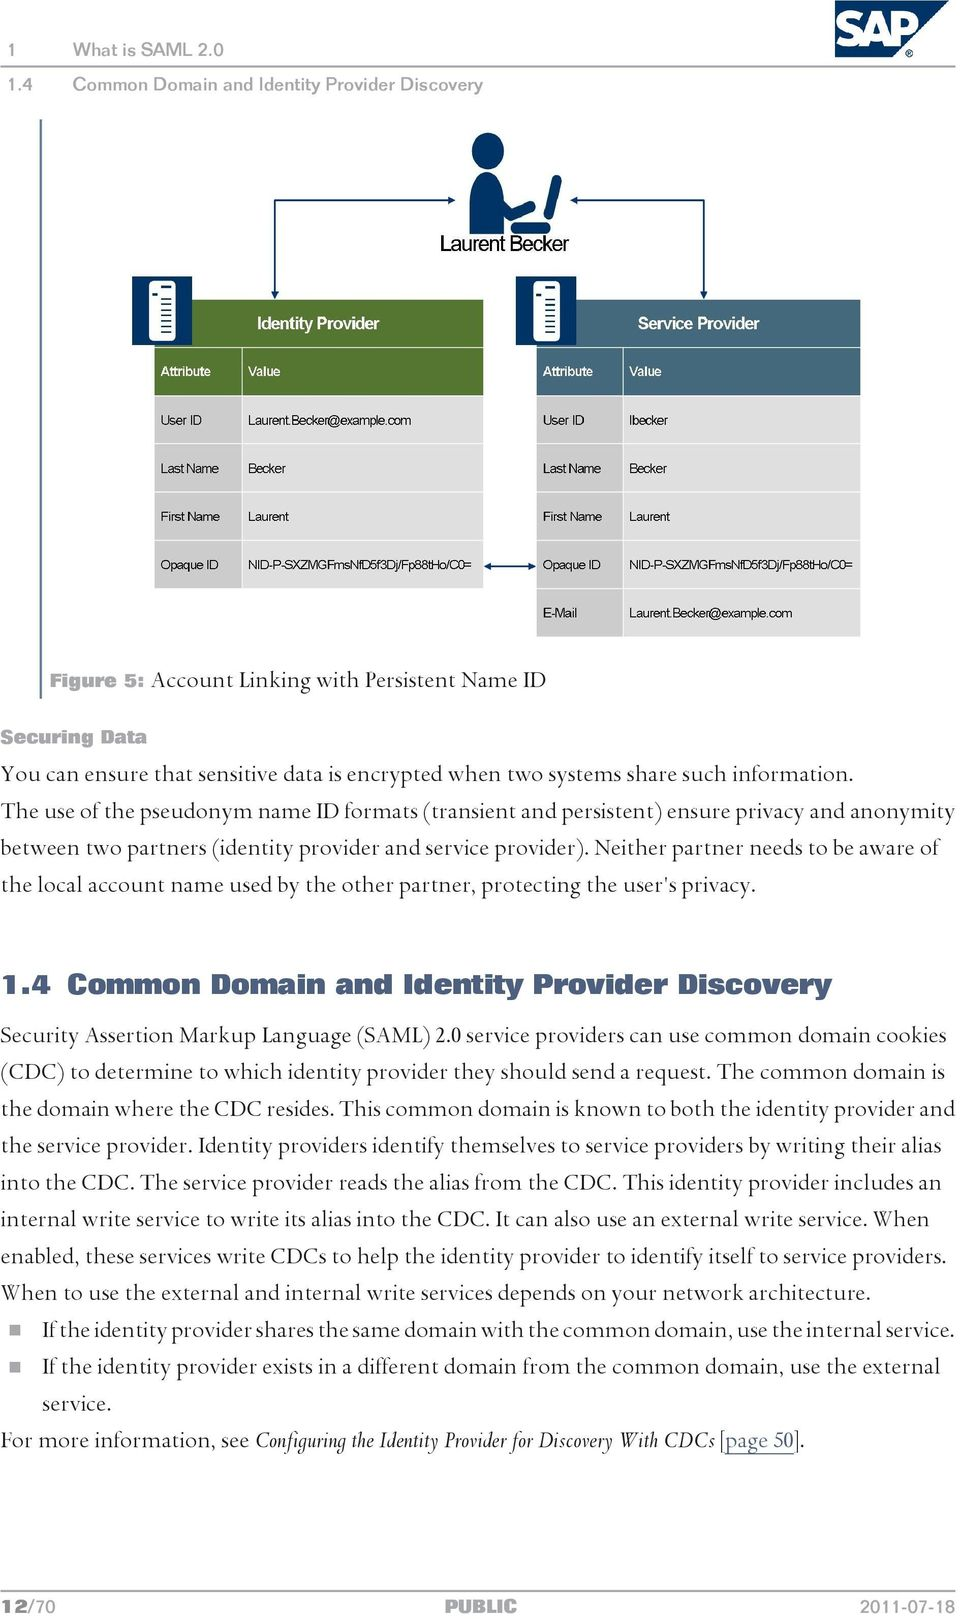 The use of the pseudonym name ID formats (transient and persistent) ensure privacy and anonymity between two partners (identity provider and service provider).